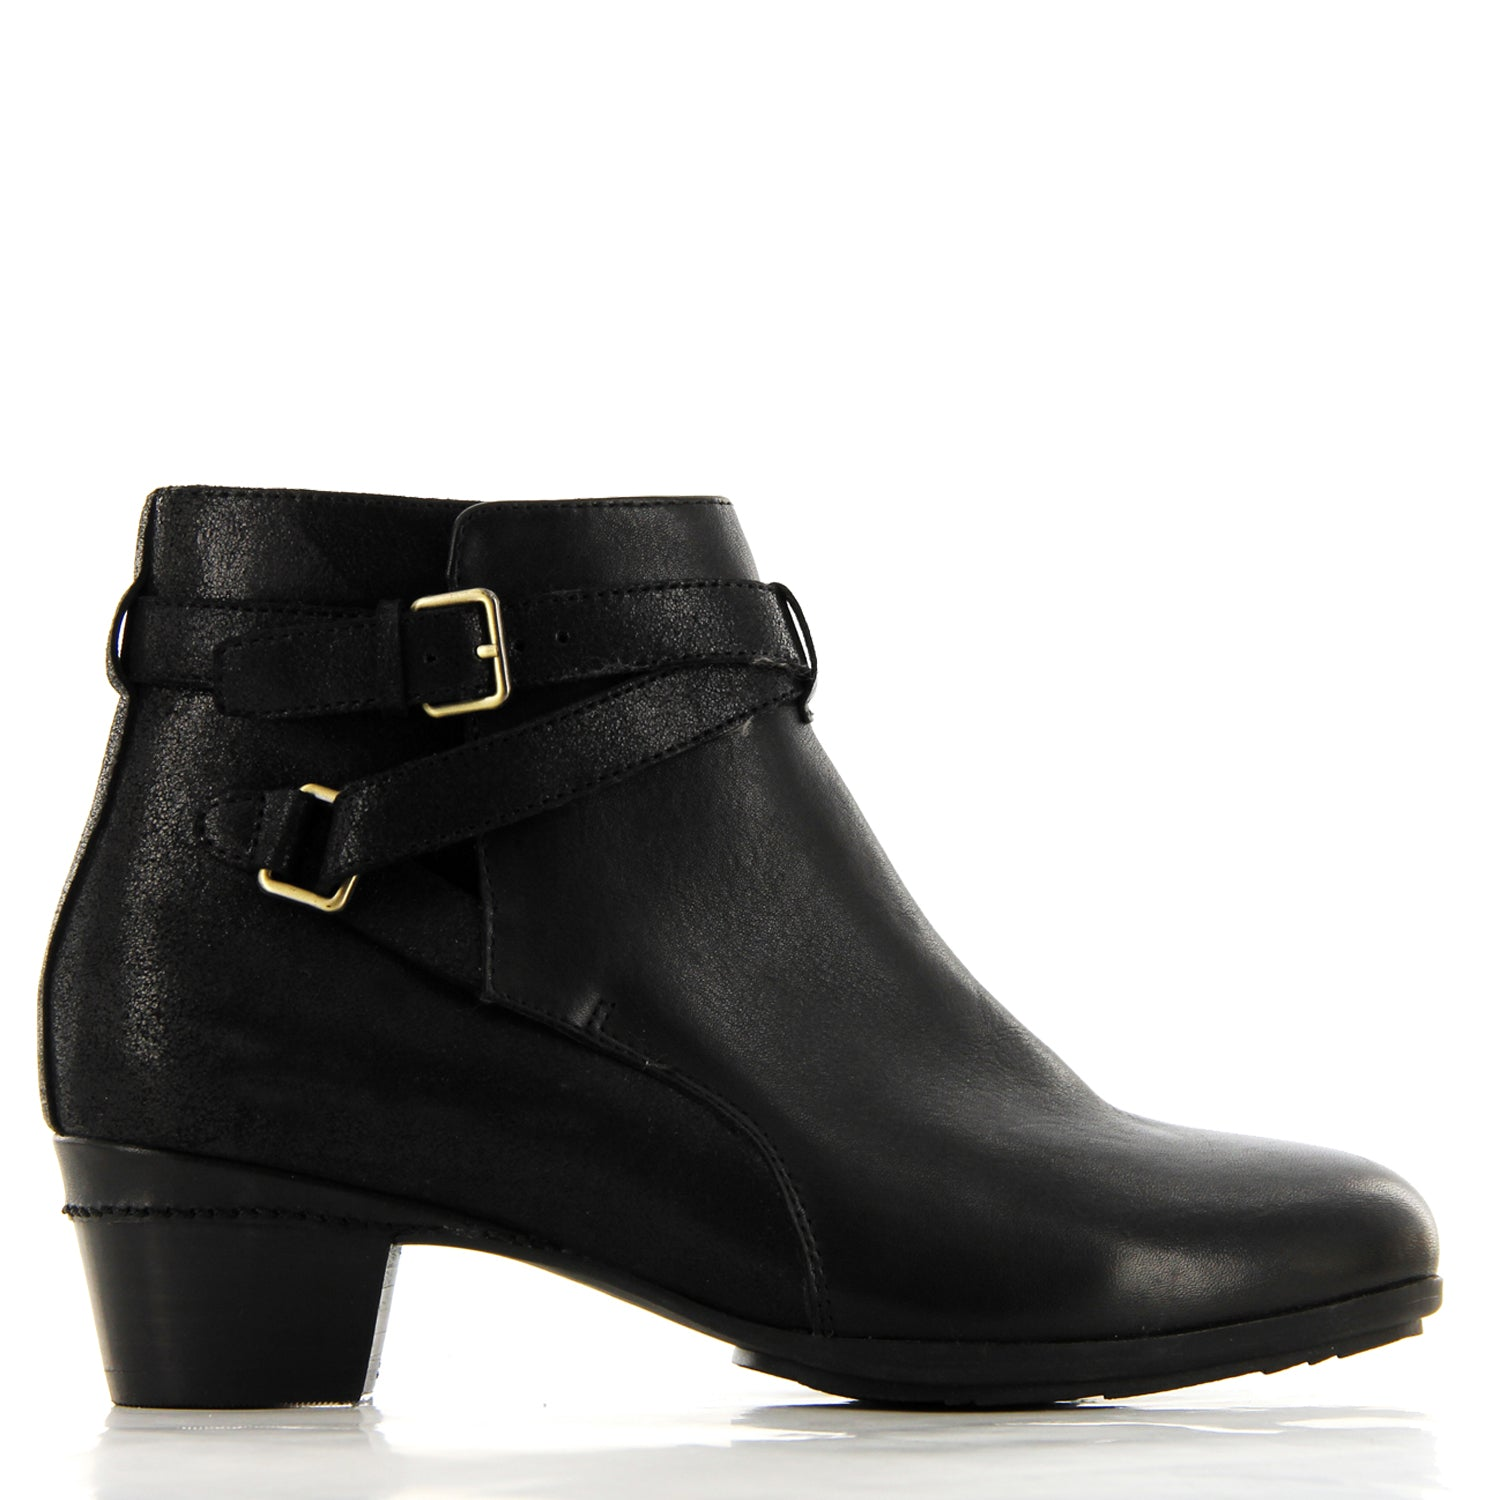 fe17447db8846 Shop Boots Online - Ian's Shoes for Women